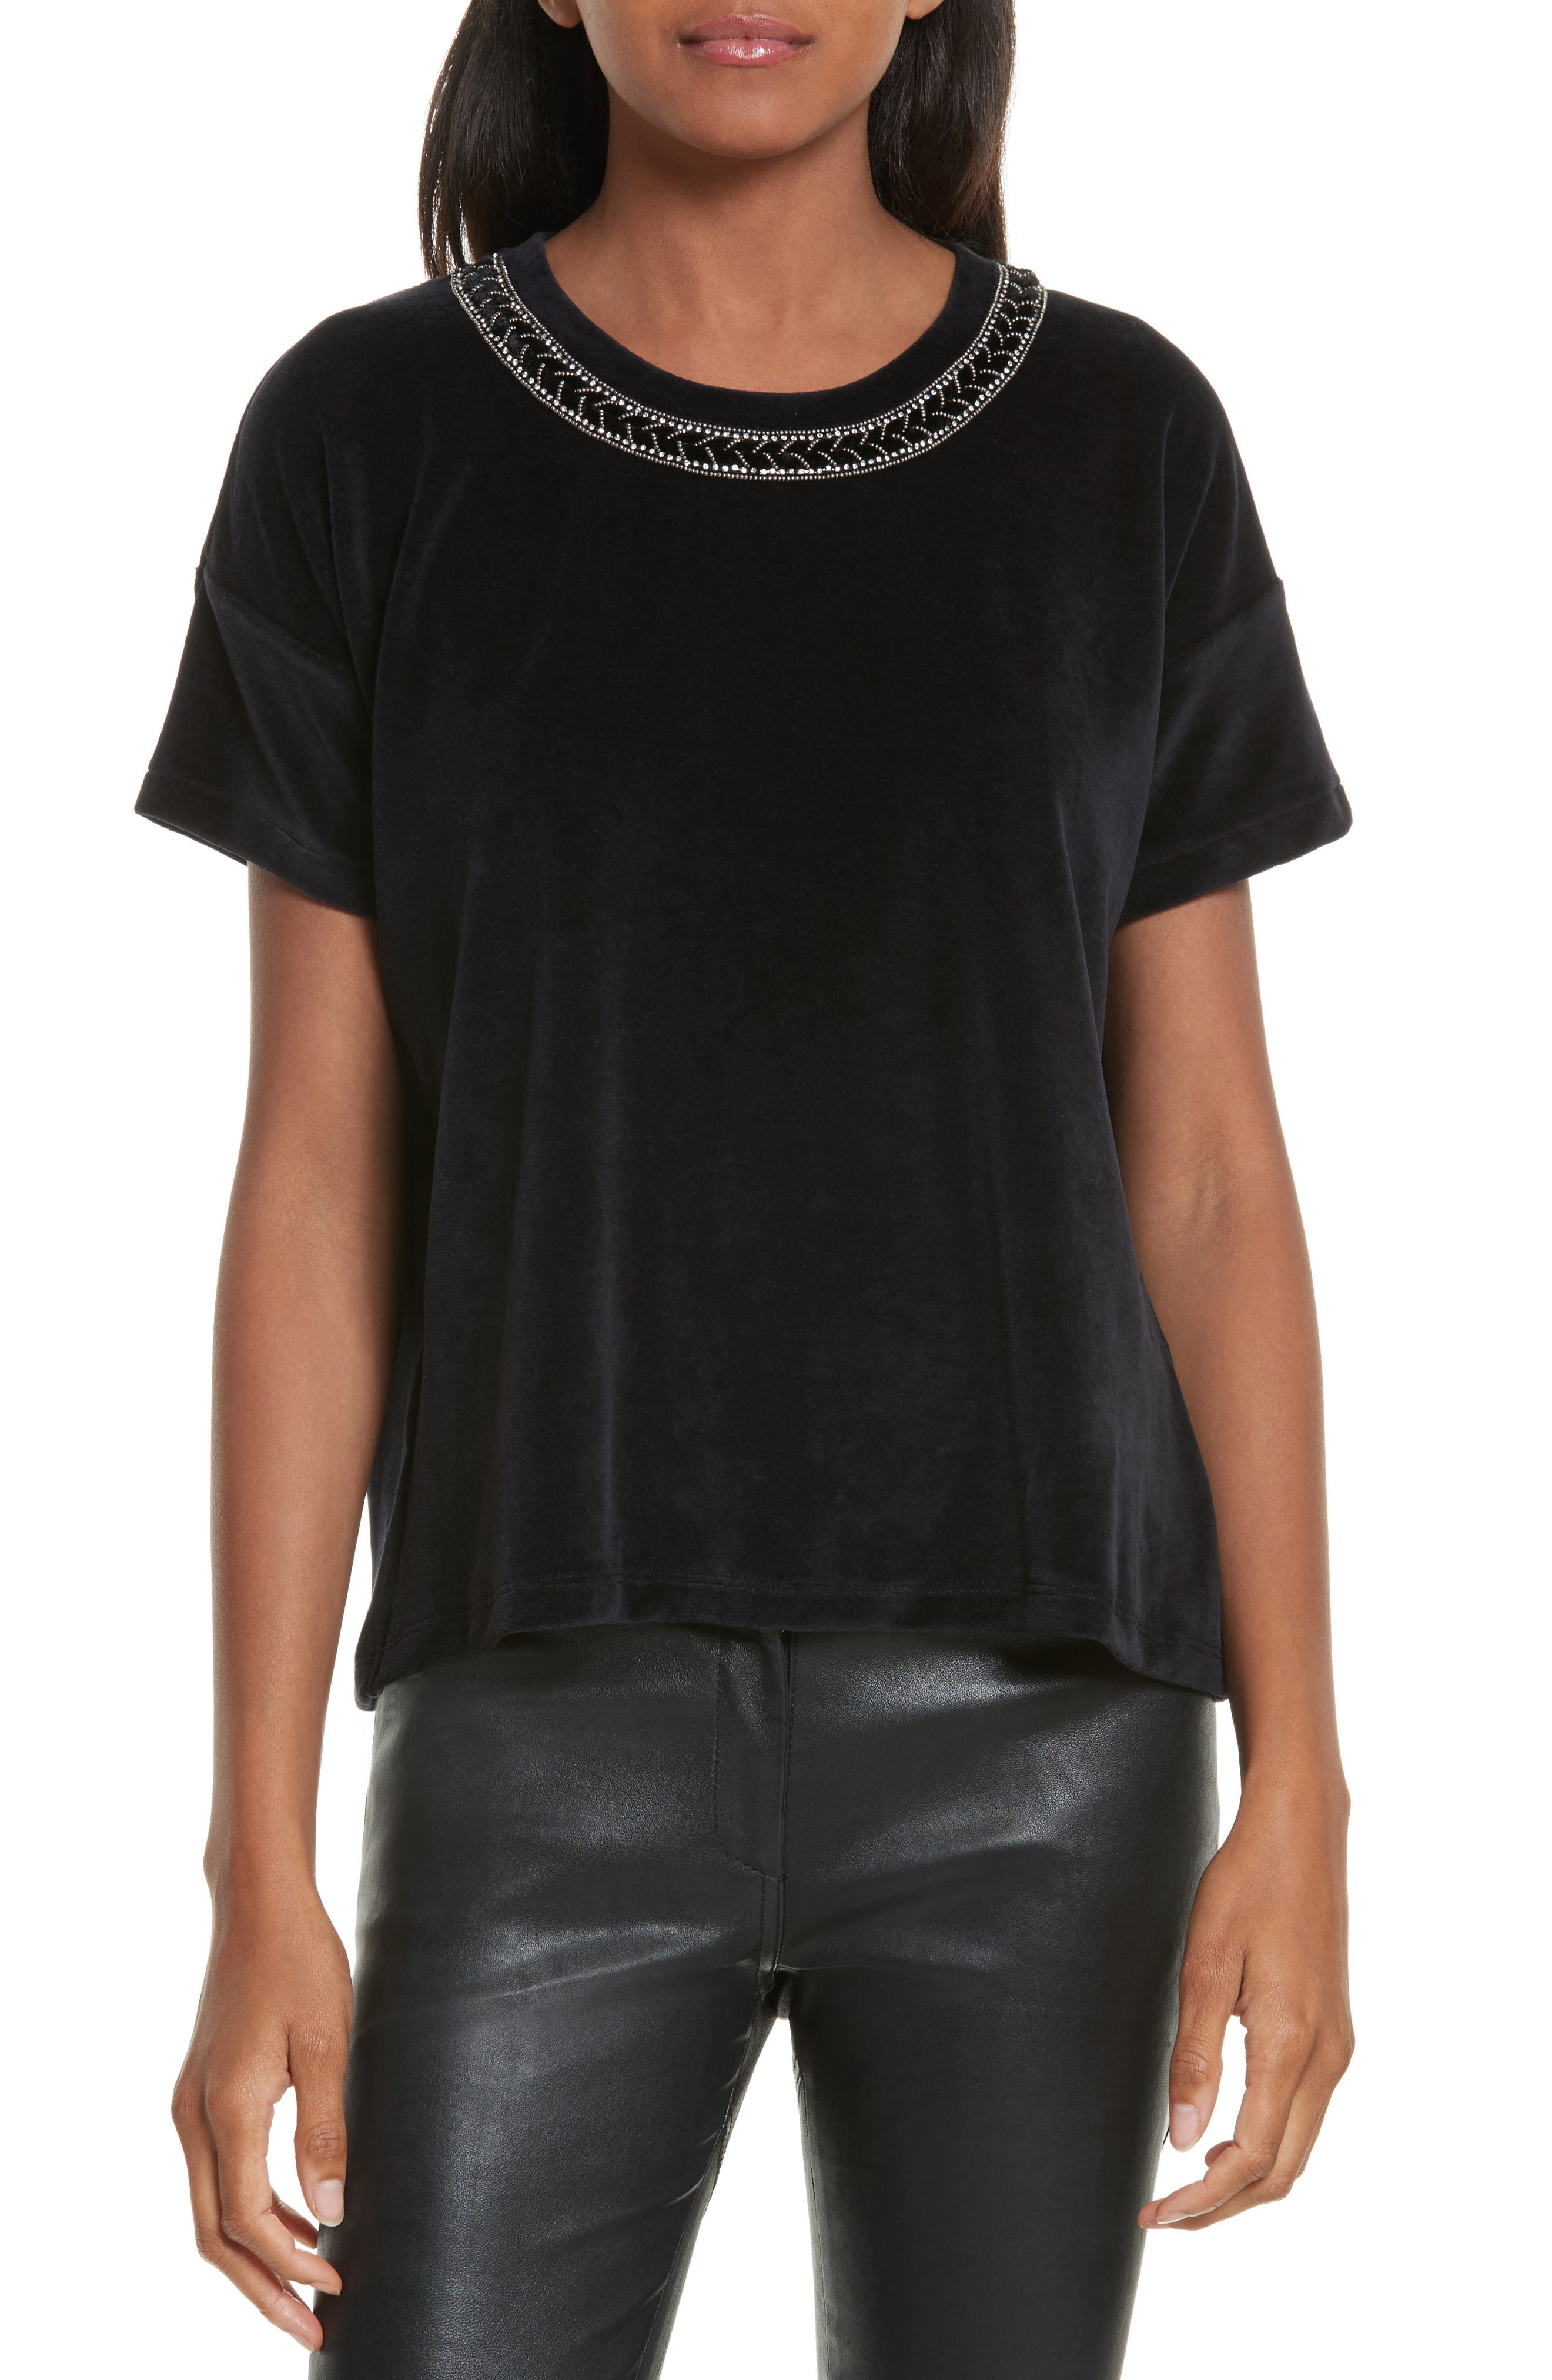 The Kooples Jewel Trim Velvet Tee